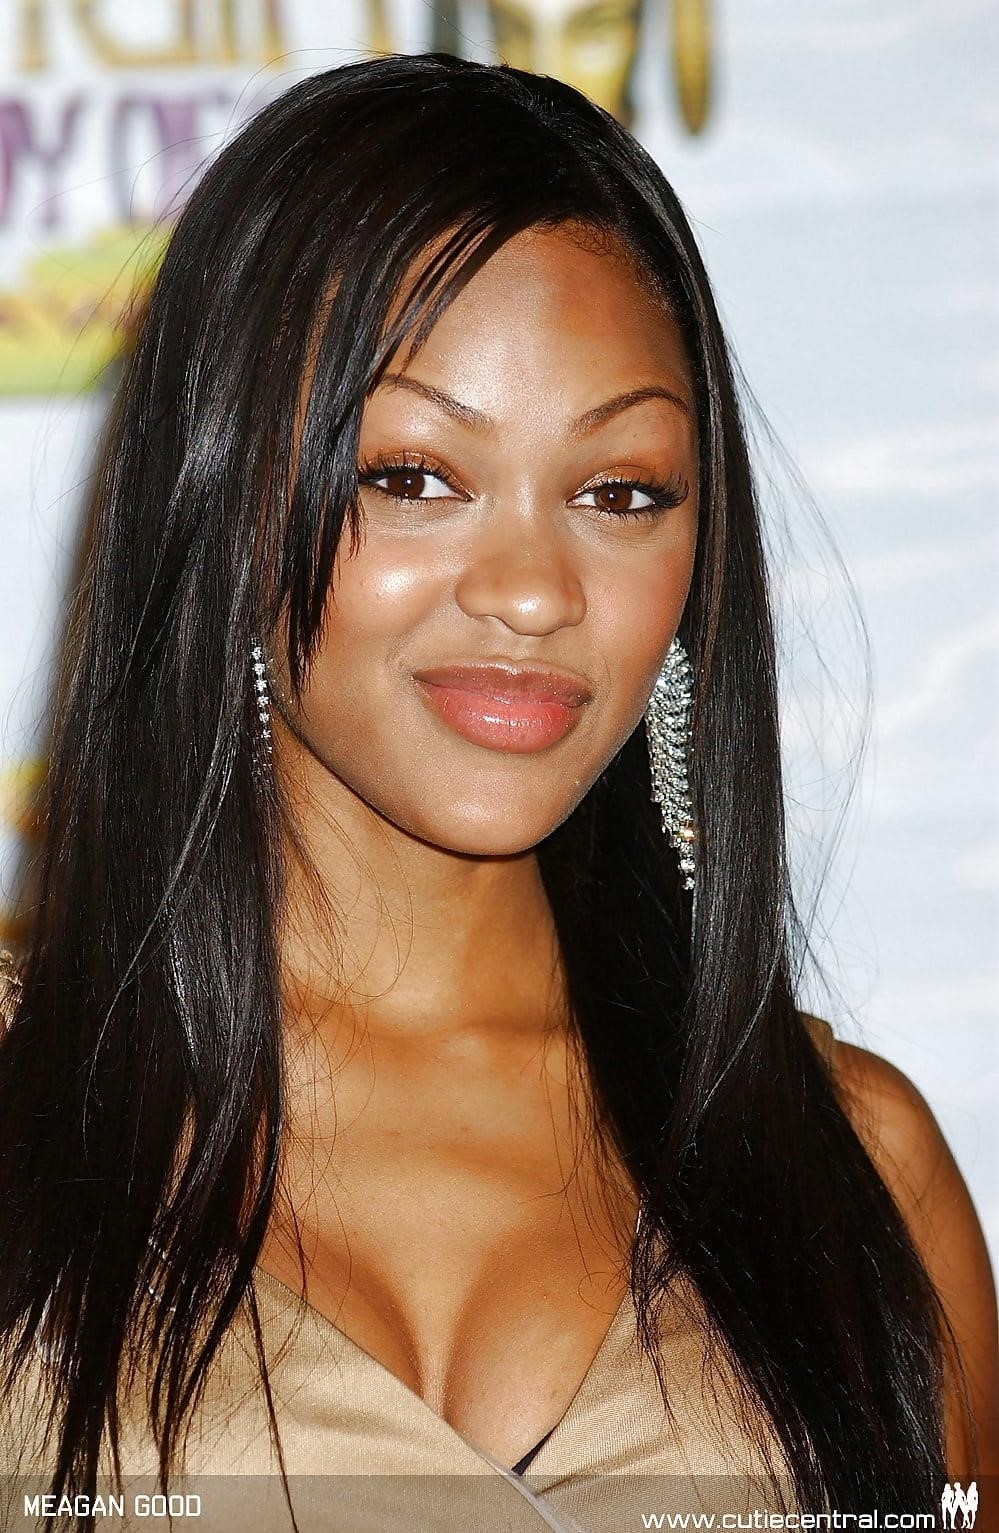 Meagan good nude pictures-2072